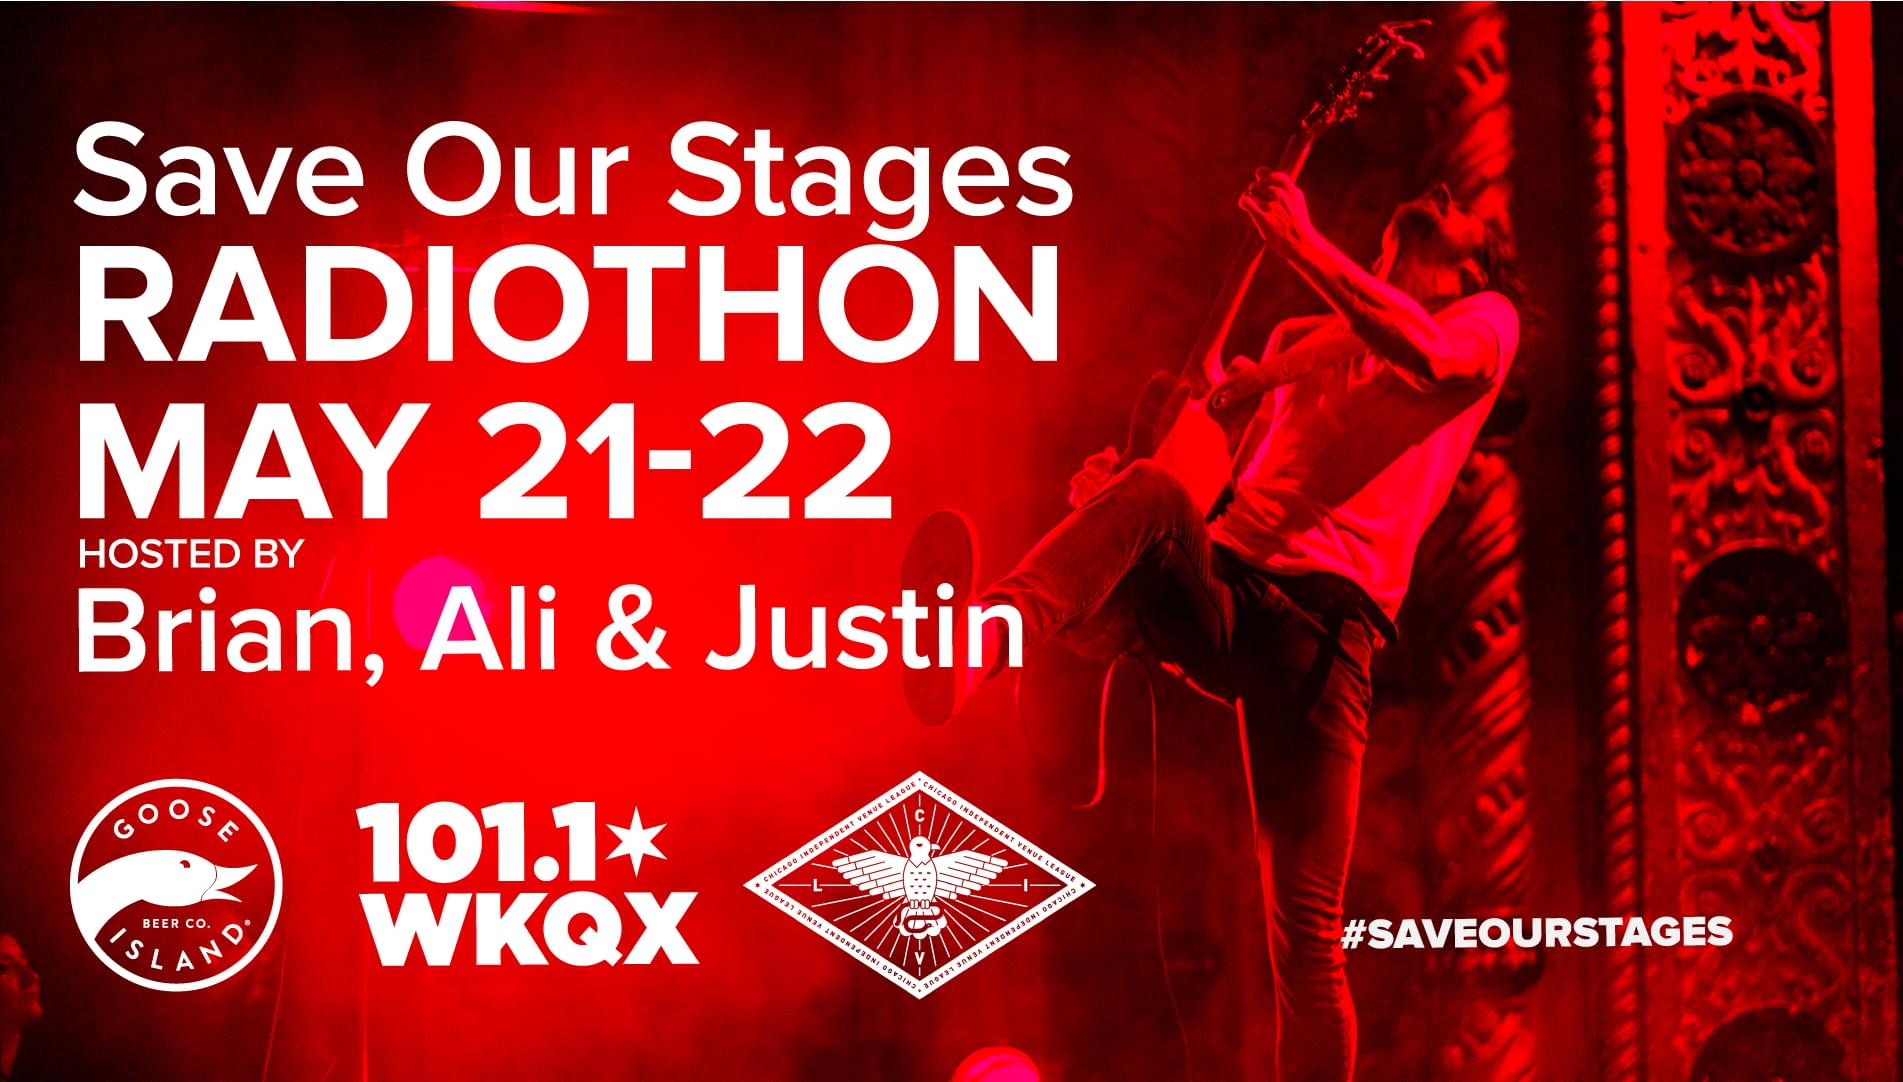 There is still time to help #SaveOurStages !!!